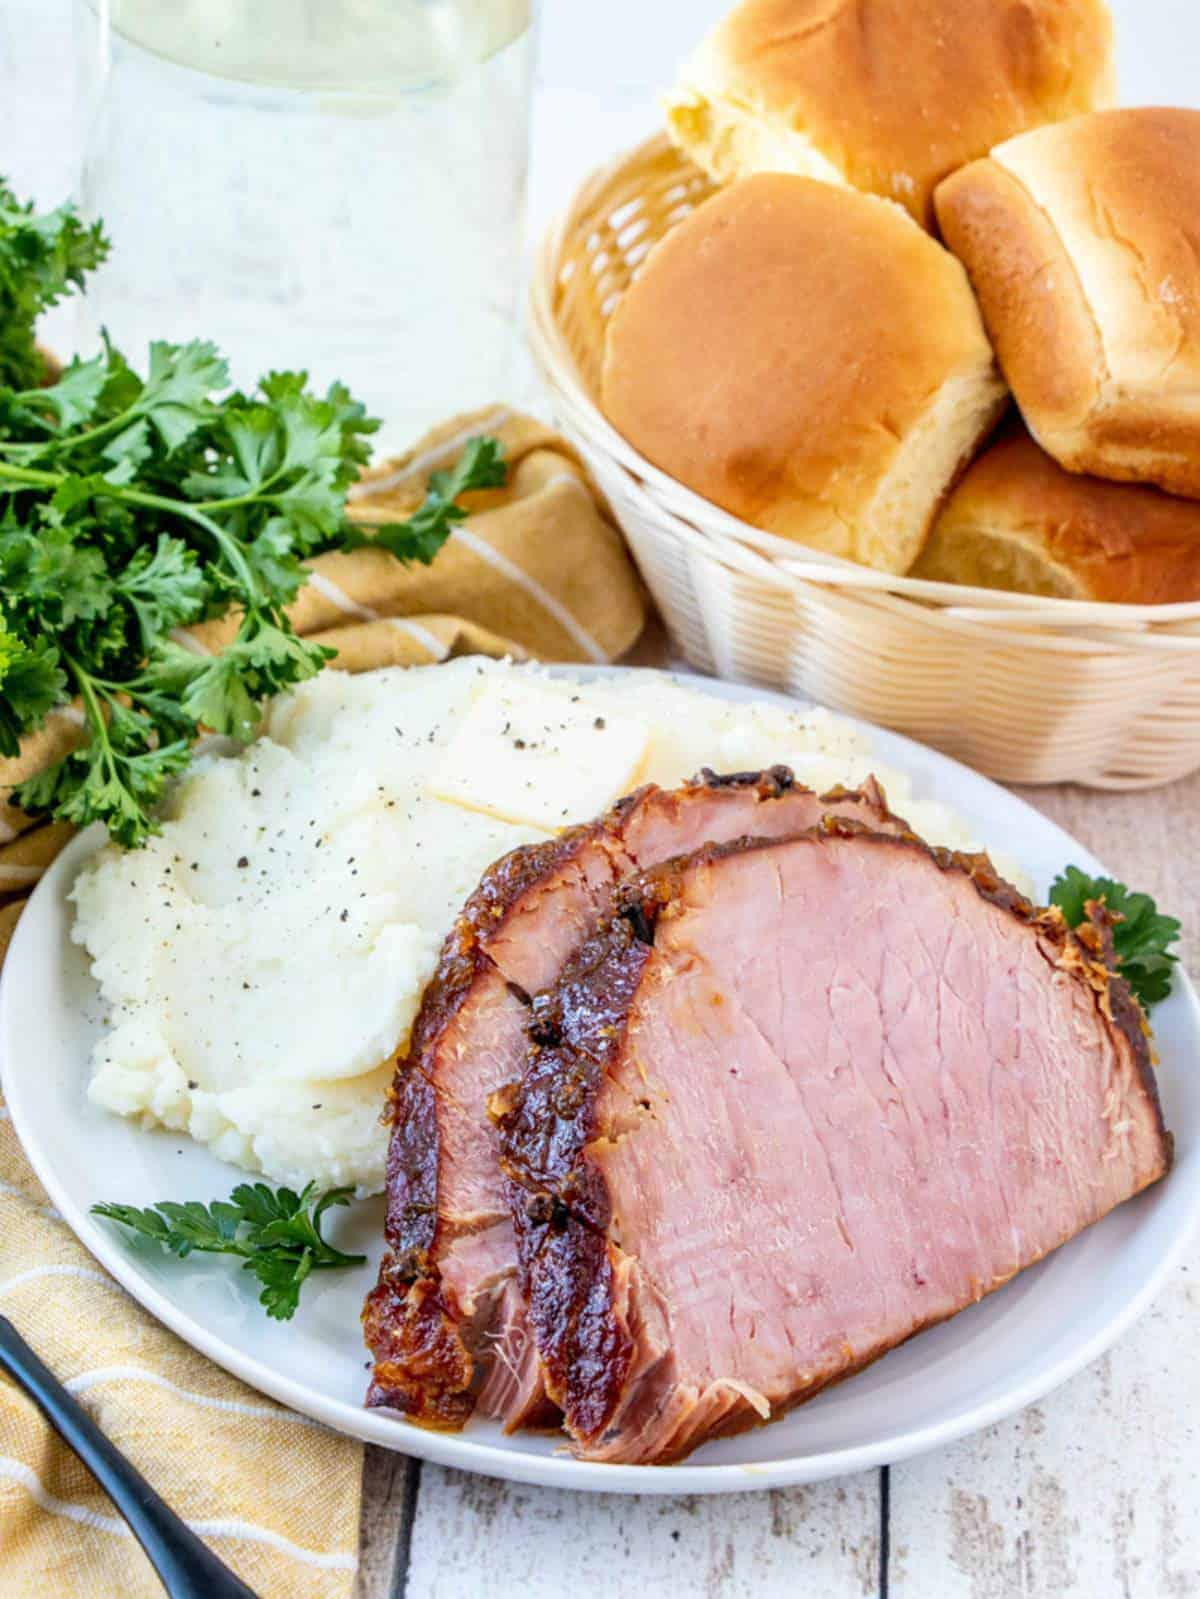 sliced Filipino-style Pineapple Glazed Ham and mashed potatoes on a white plate with a basket of dinner rolls on the side